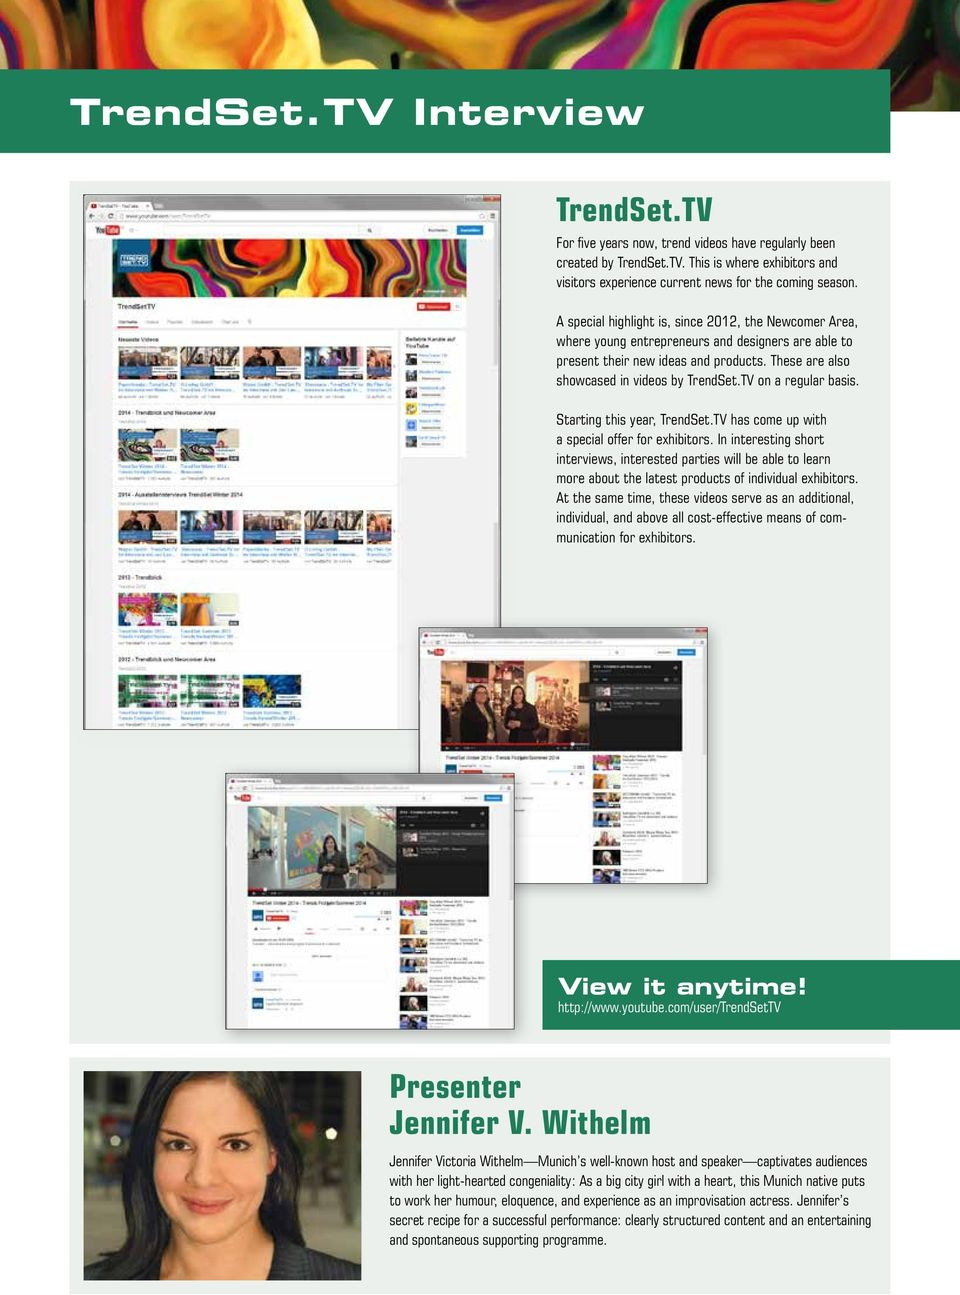 TV on a regular basis. Starting this year, TrendSet.TV has come up with a special offer for exhibitors.